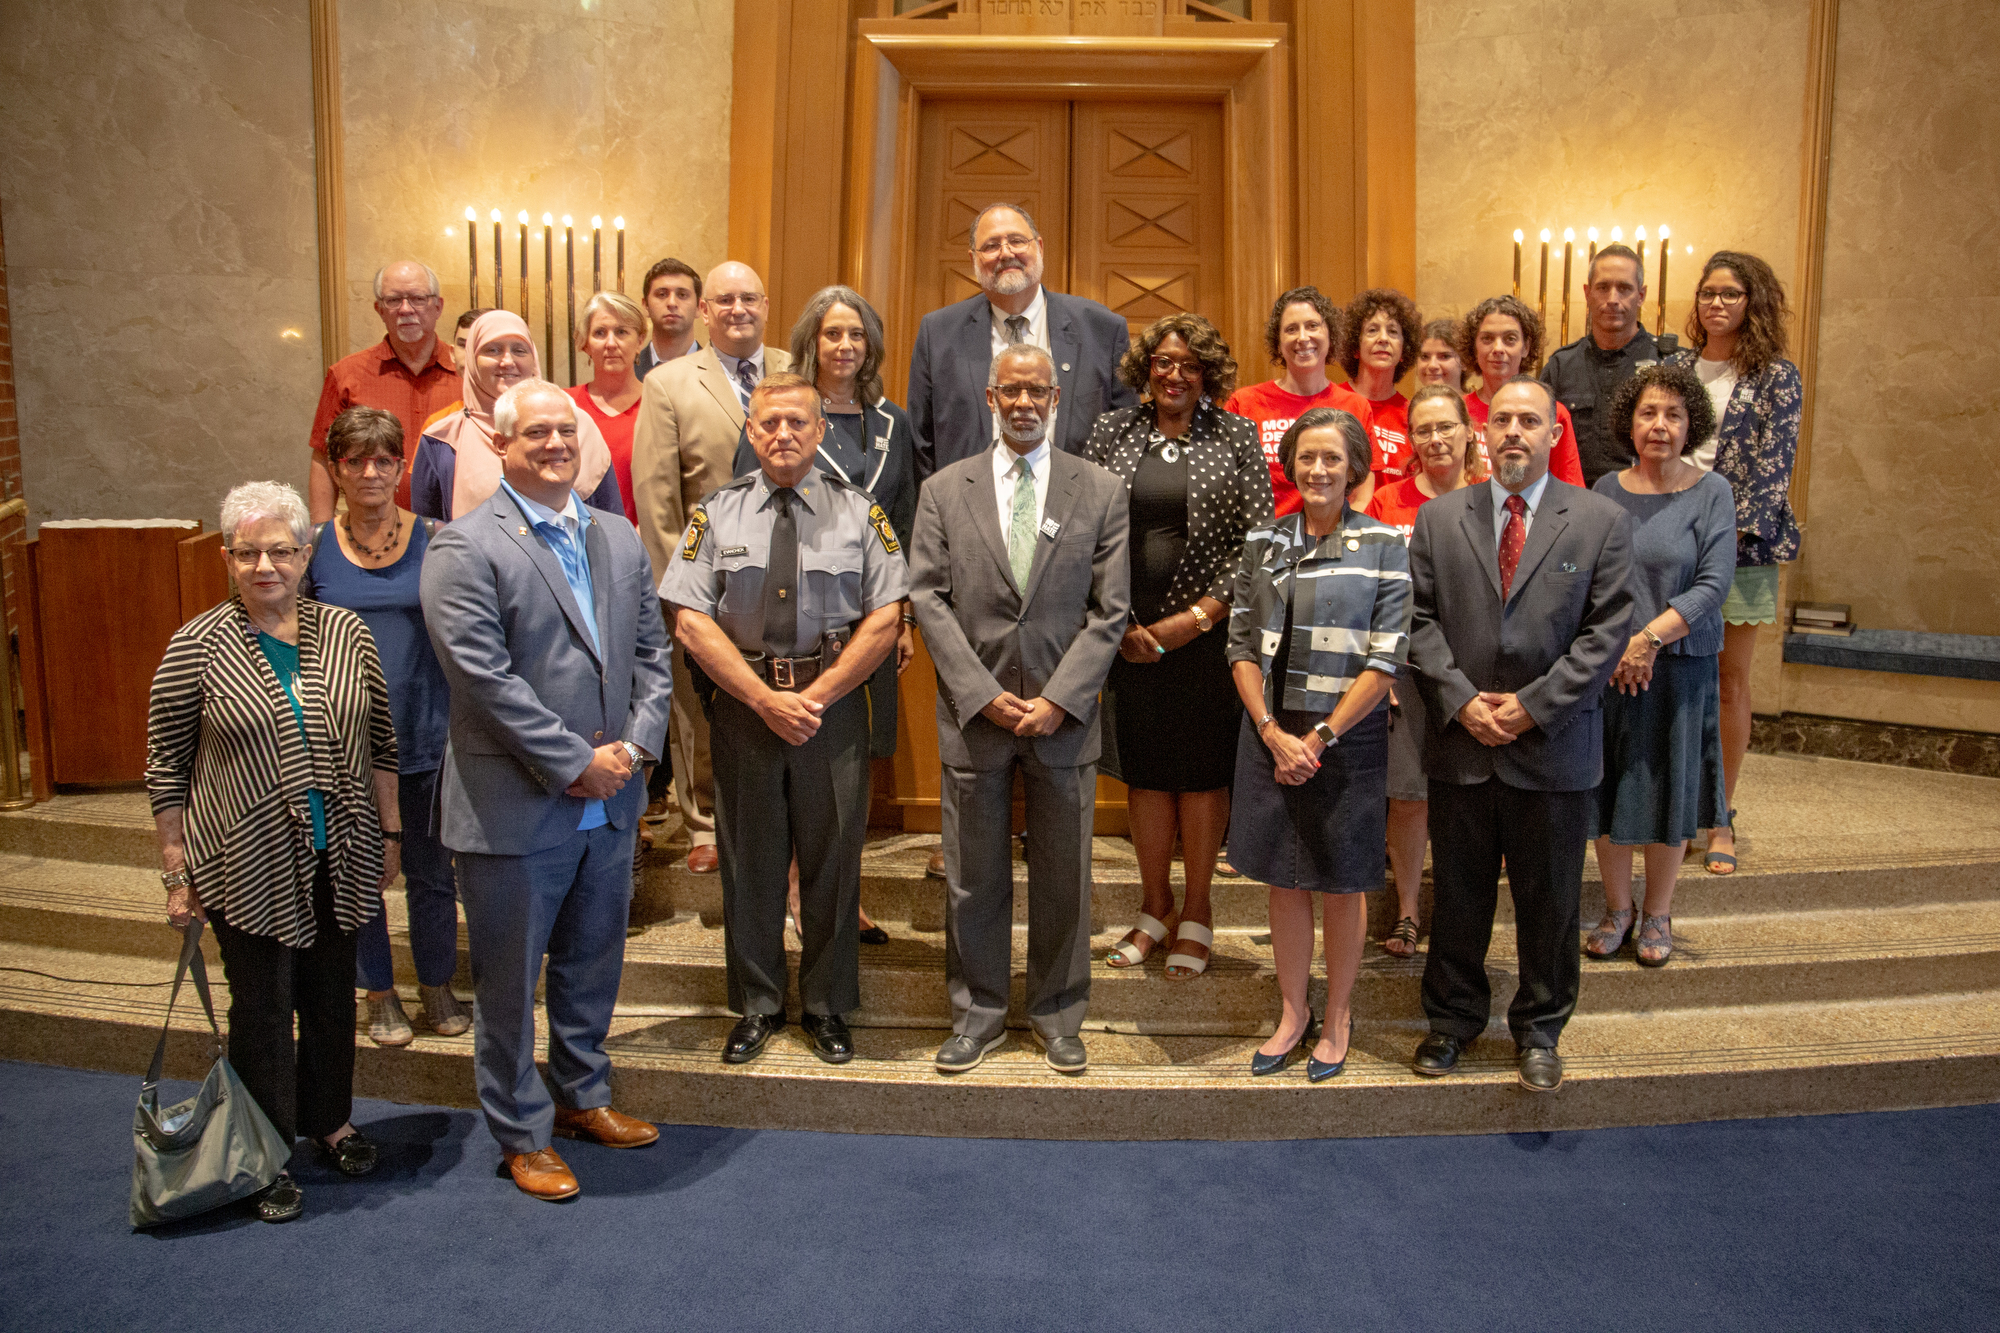 August 15, 2019: Senator Art Haywood Hosts 'No Place for Hate' Press Conference